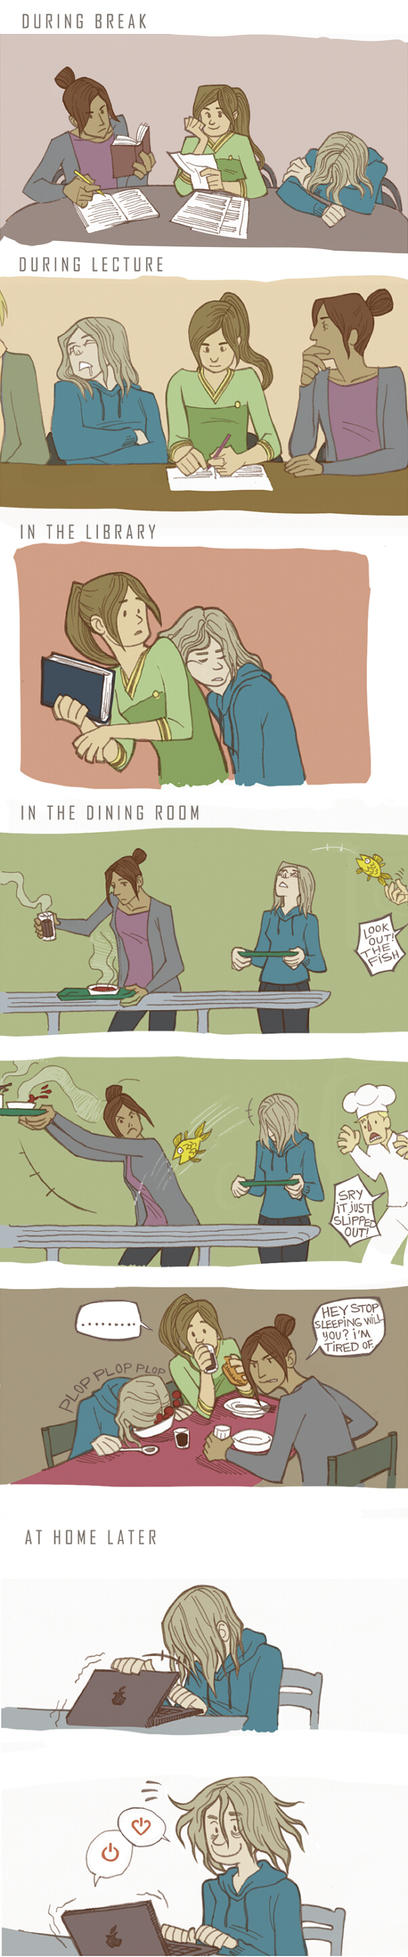 A typical university day by zumart